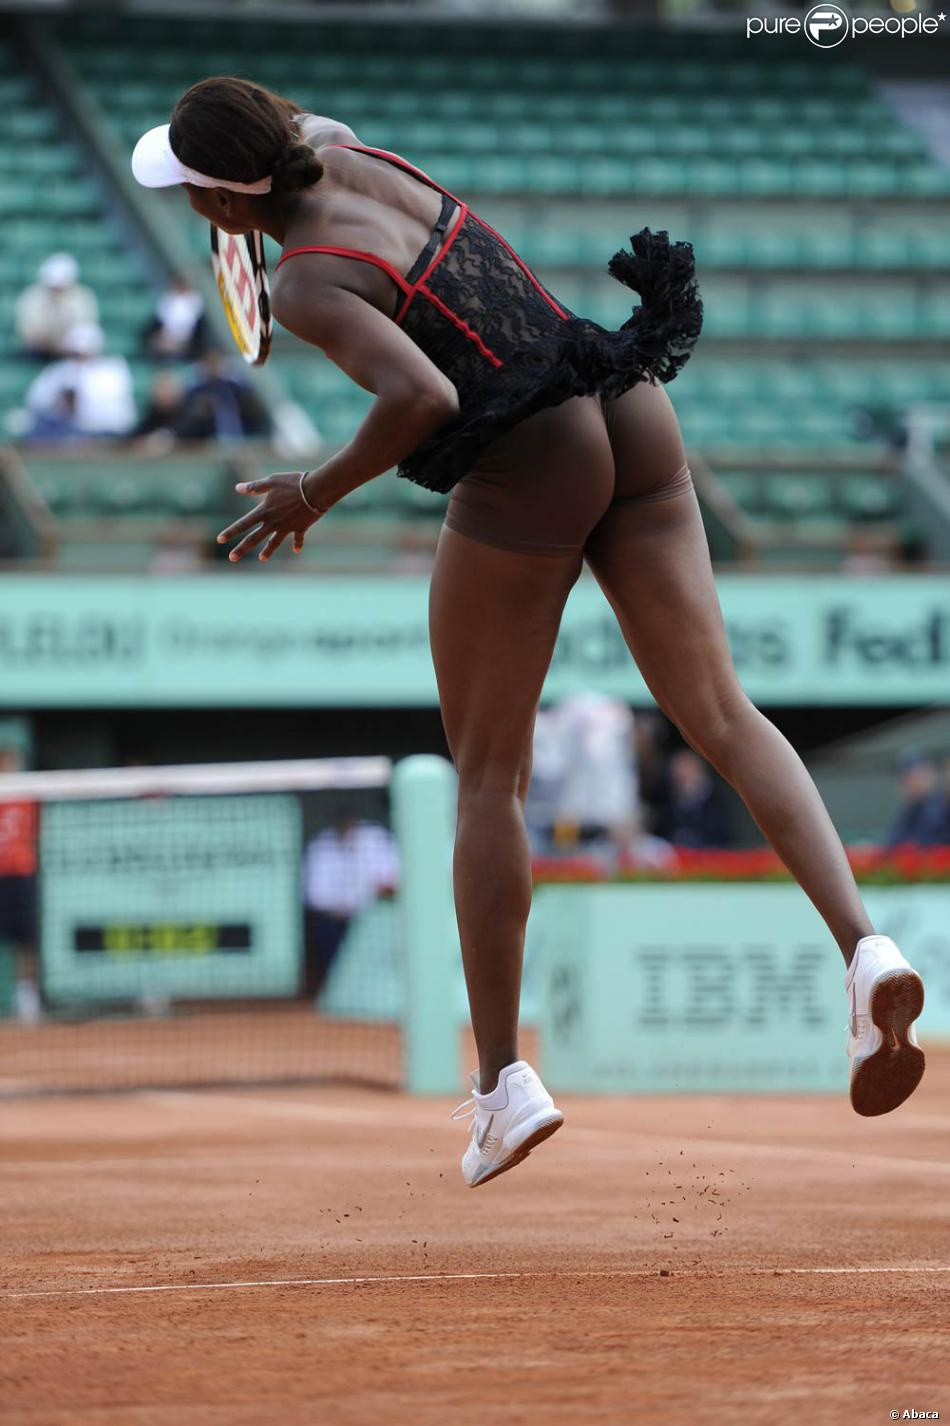 Venus Williams NUE - celeb-nuescom